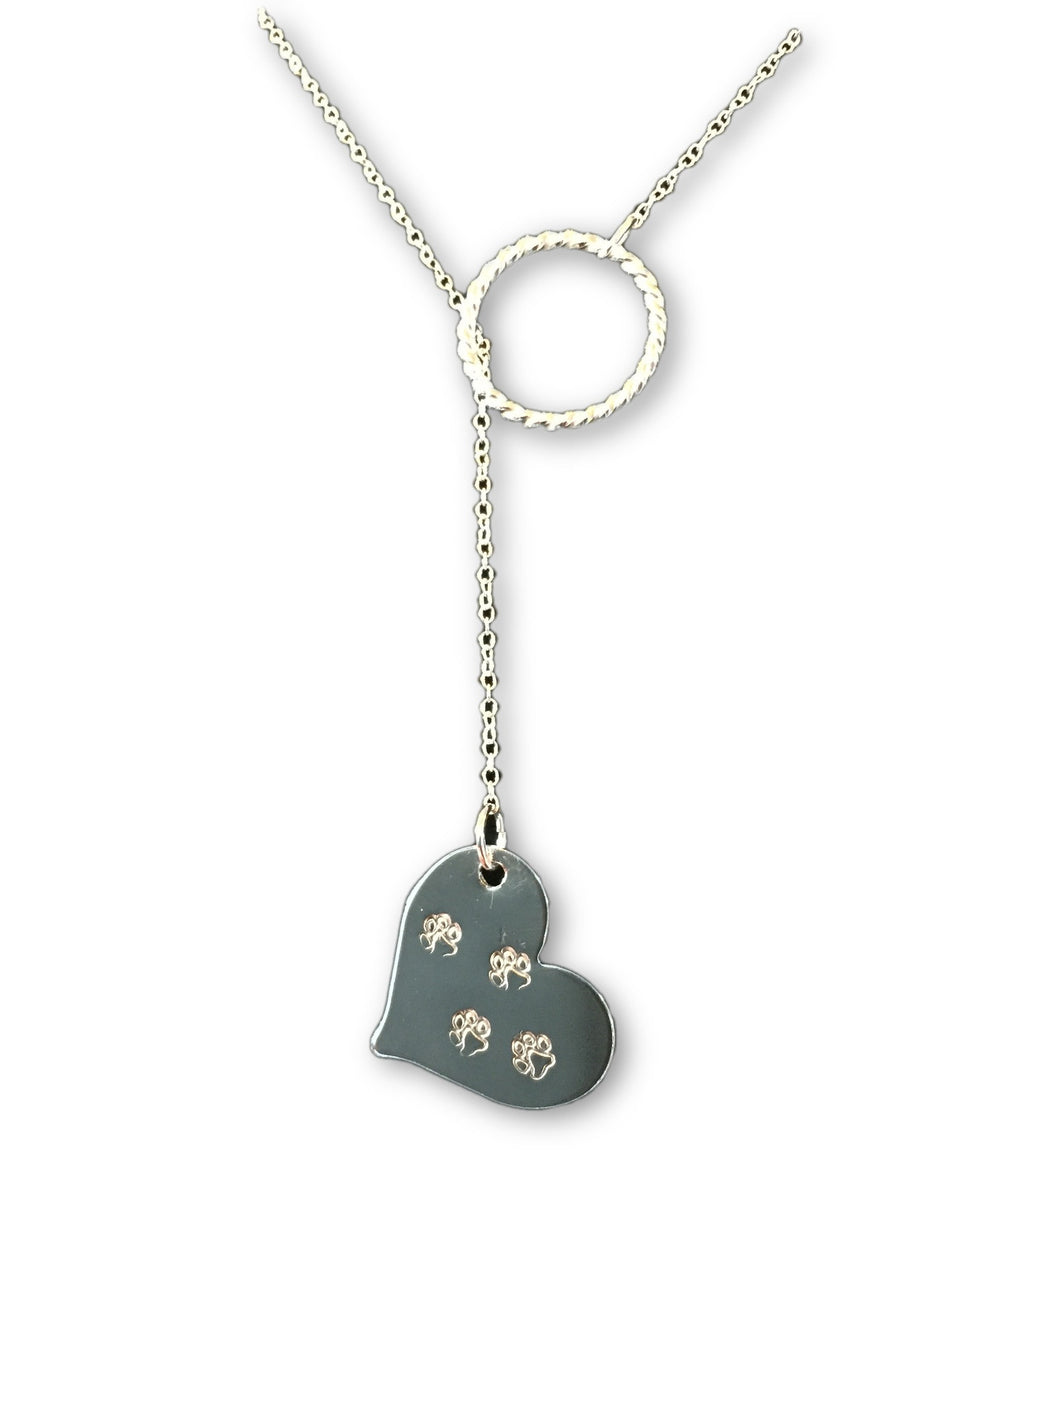 Pet Necklace, Pet Memorial Necklace, Paws on our Hearts Lariat, Inspire